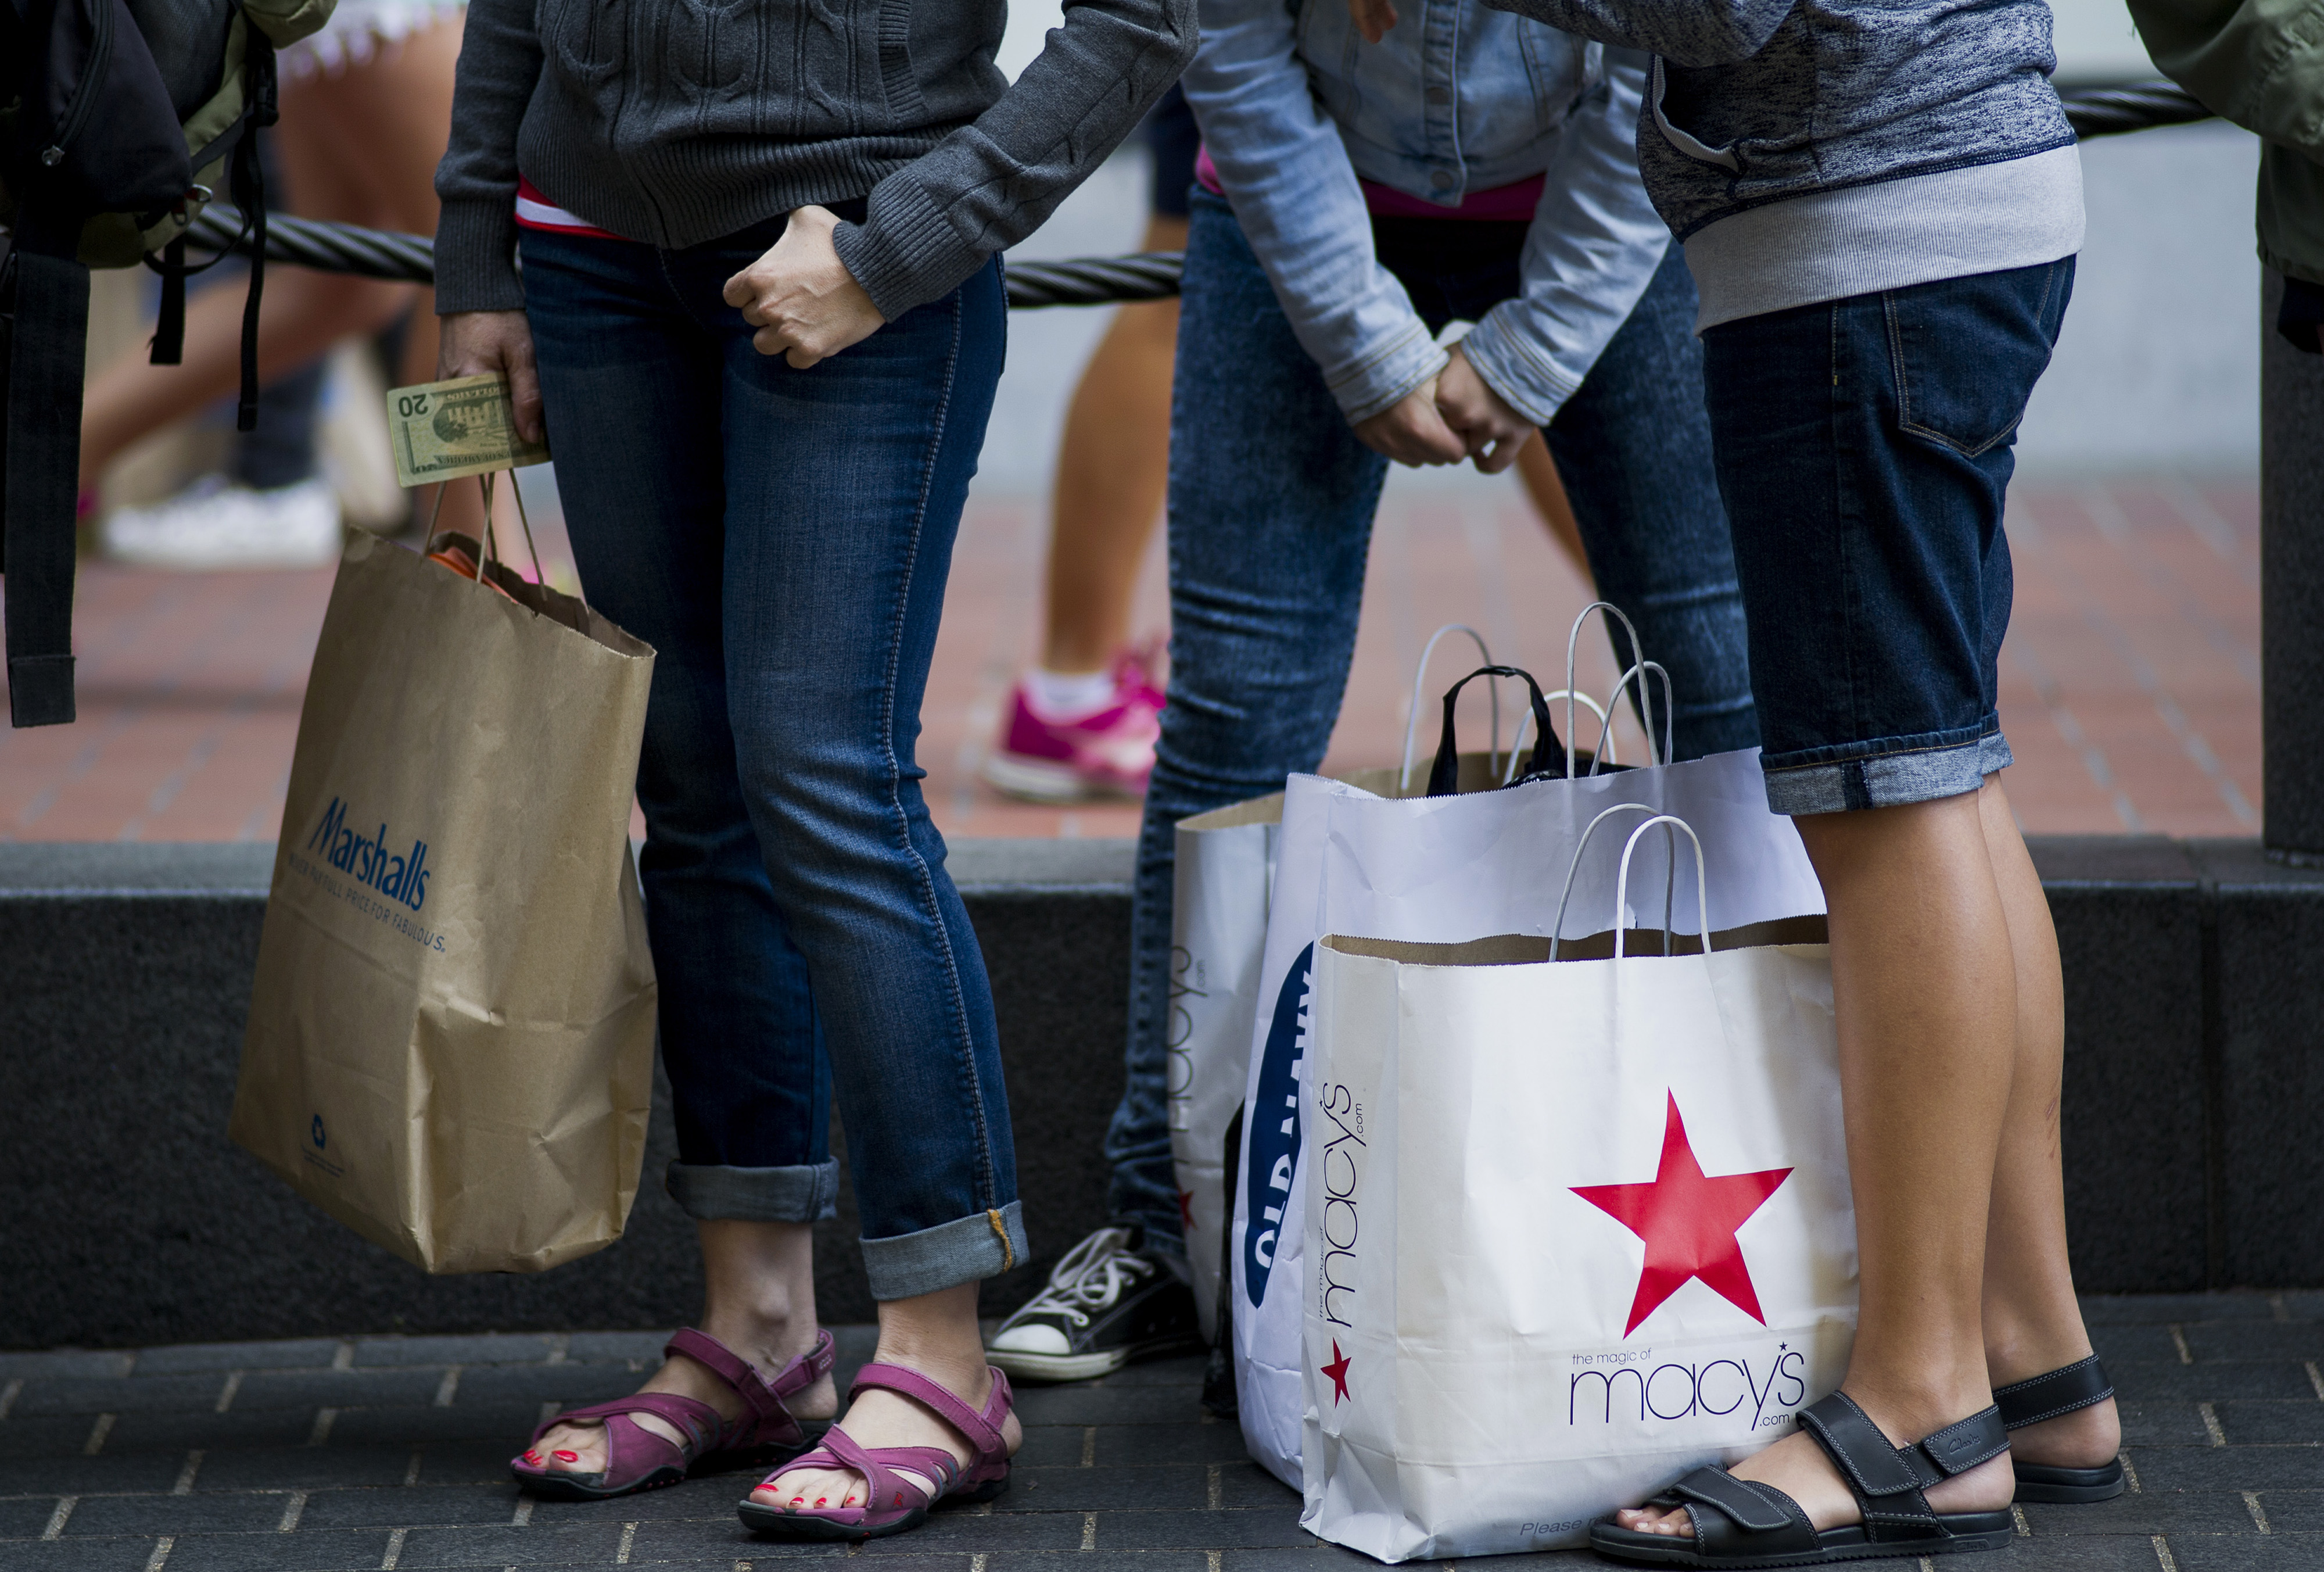 Shoppers In The Union Square Area As Retail Sales Figures Are Released